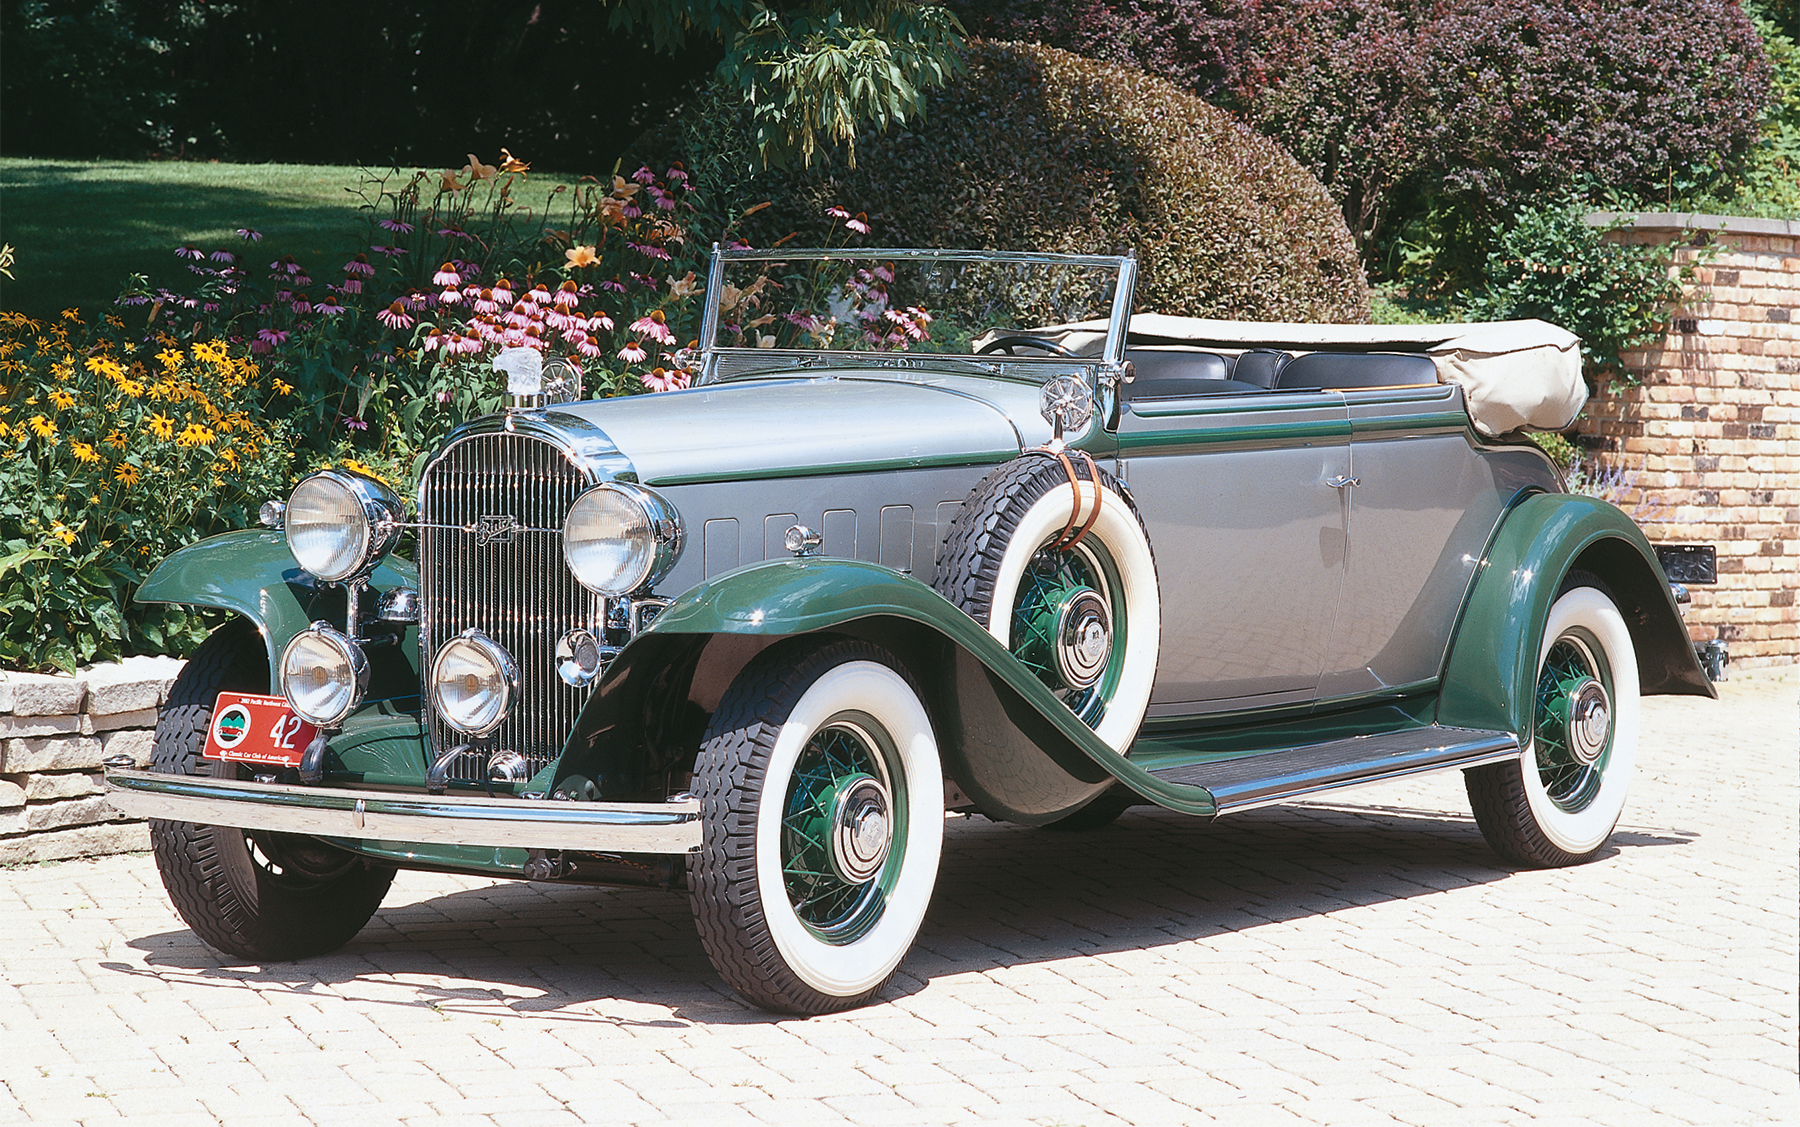 Photo Feature: 1932 Buick Series 90 Convertible Phaeton, Top Down, Green